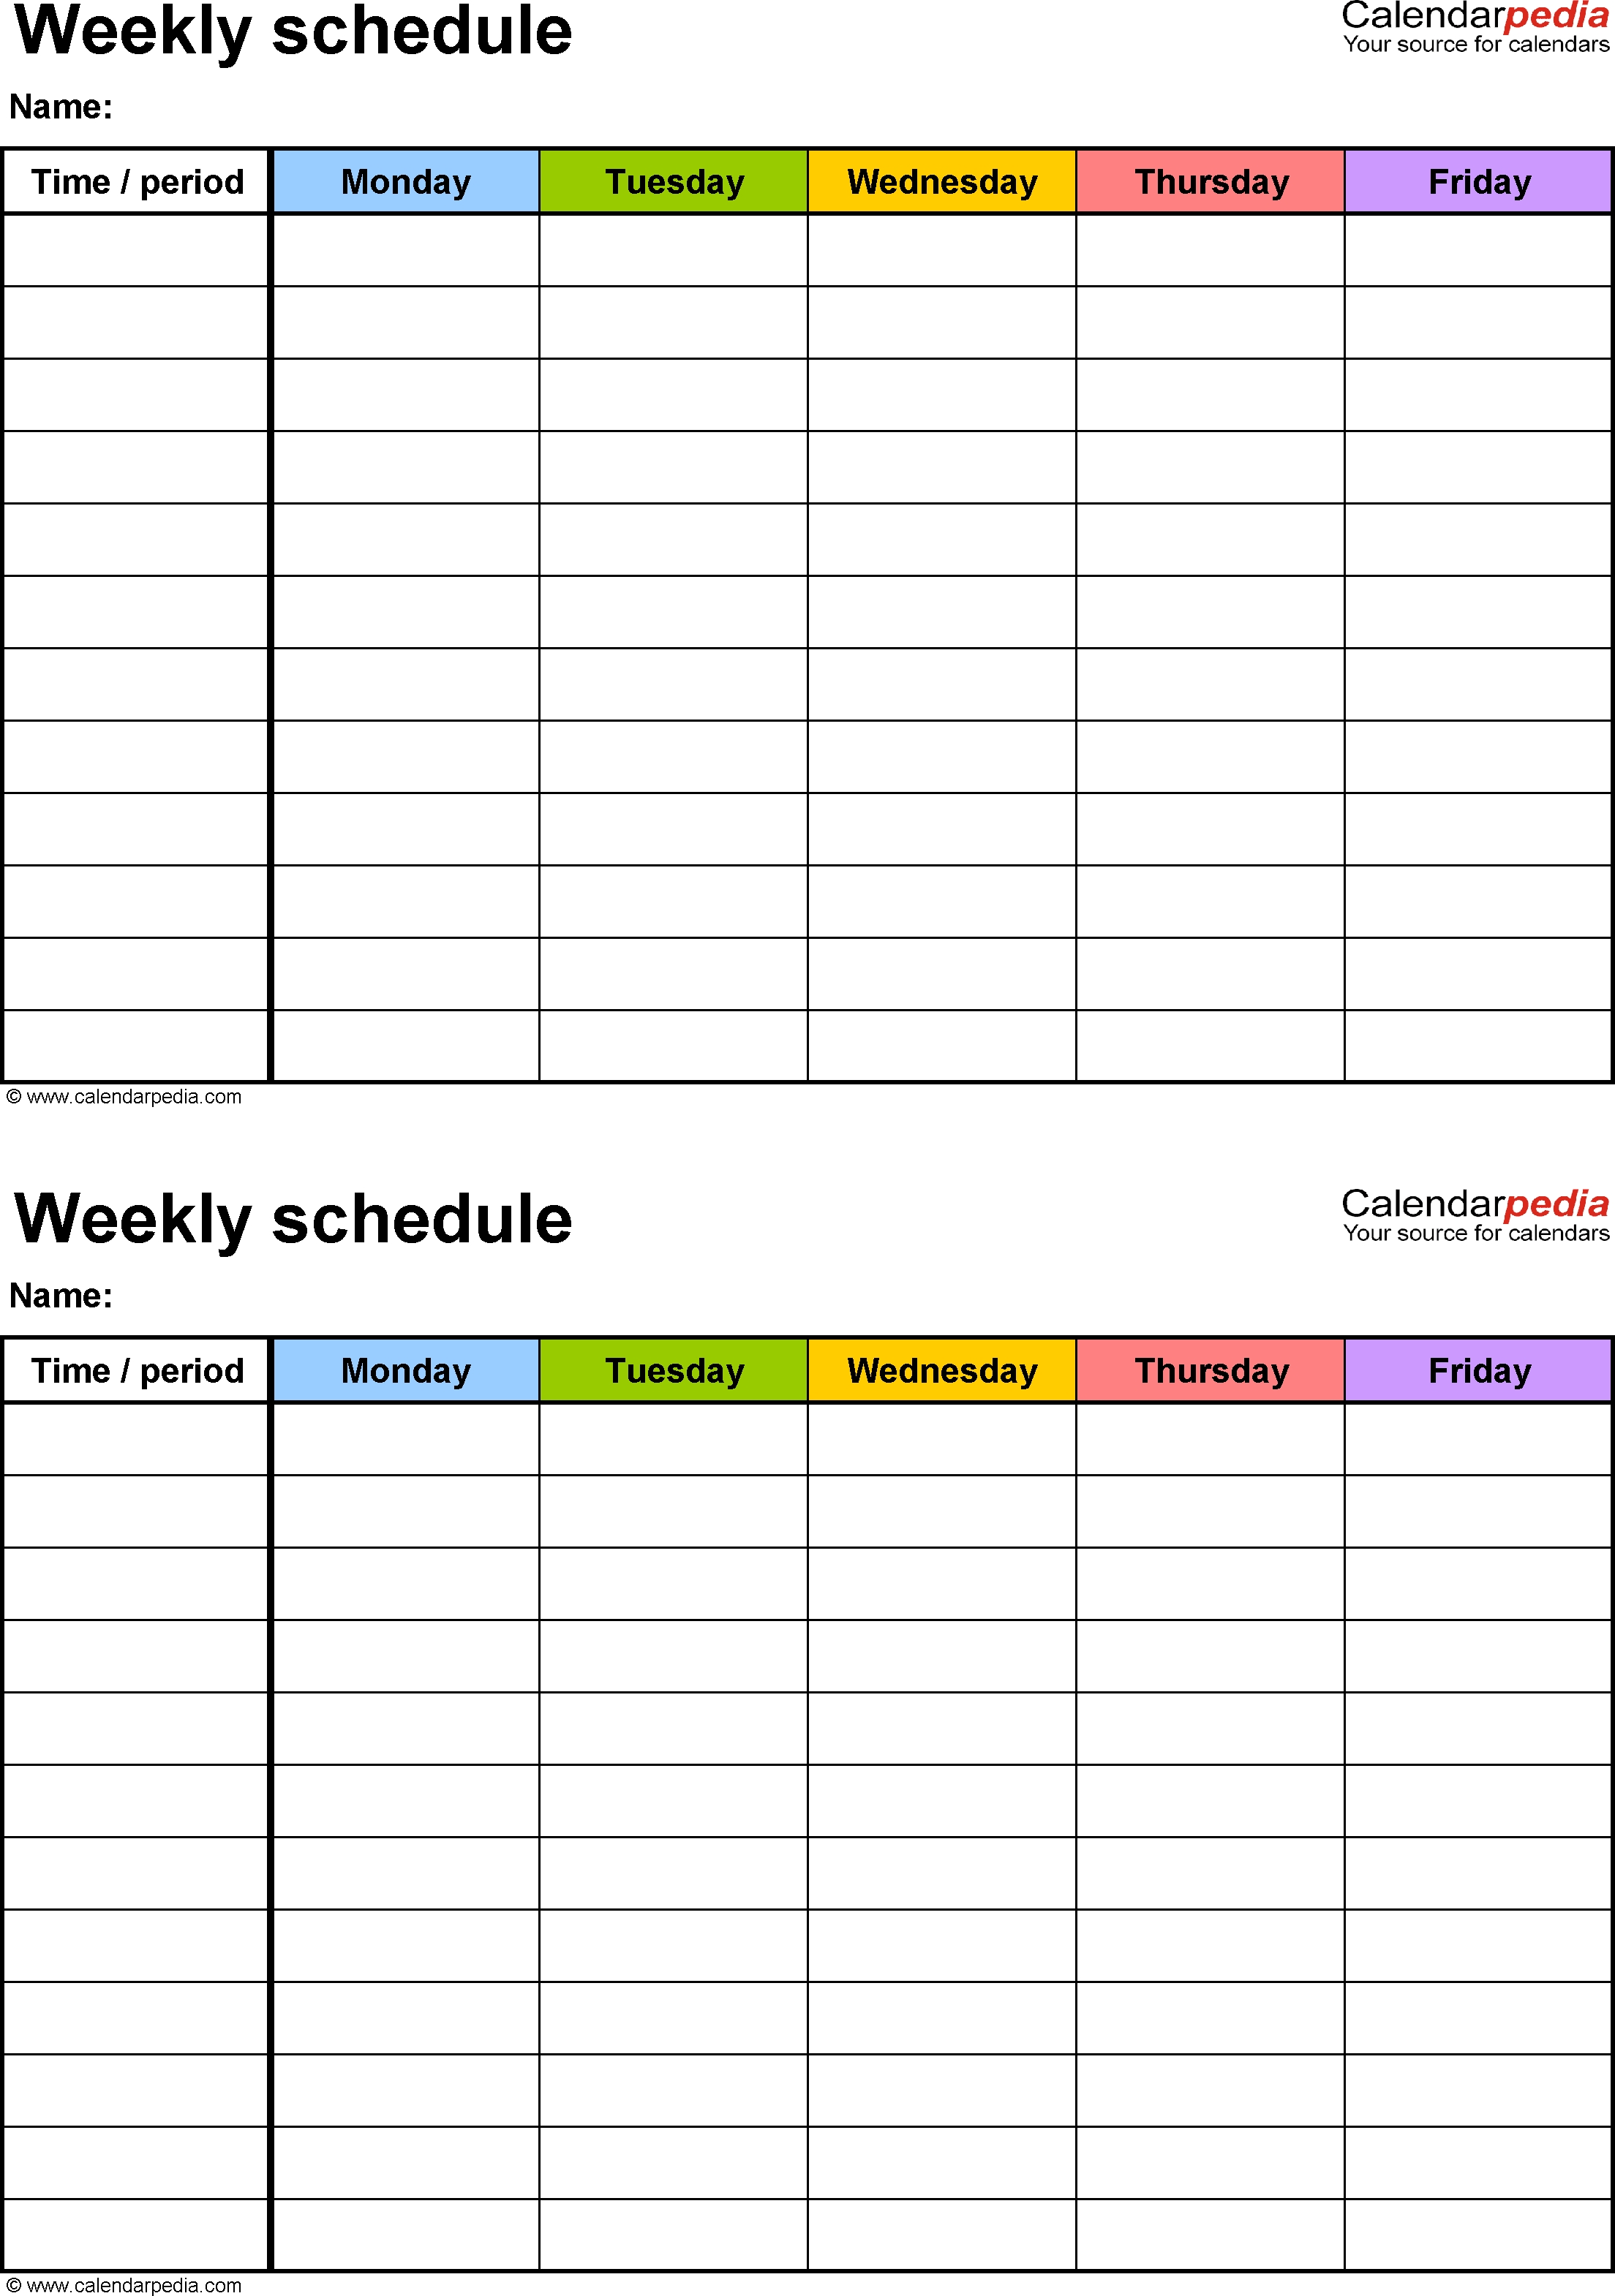 Weekly Schedule Template For Excel Version 3: 2 Schedules On One throughout Printable Weekly Schedule Monday Through Friday